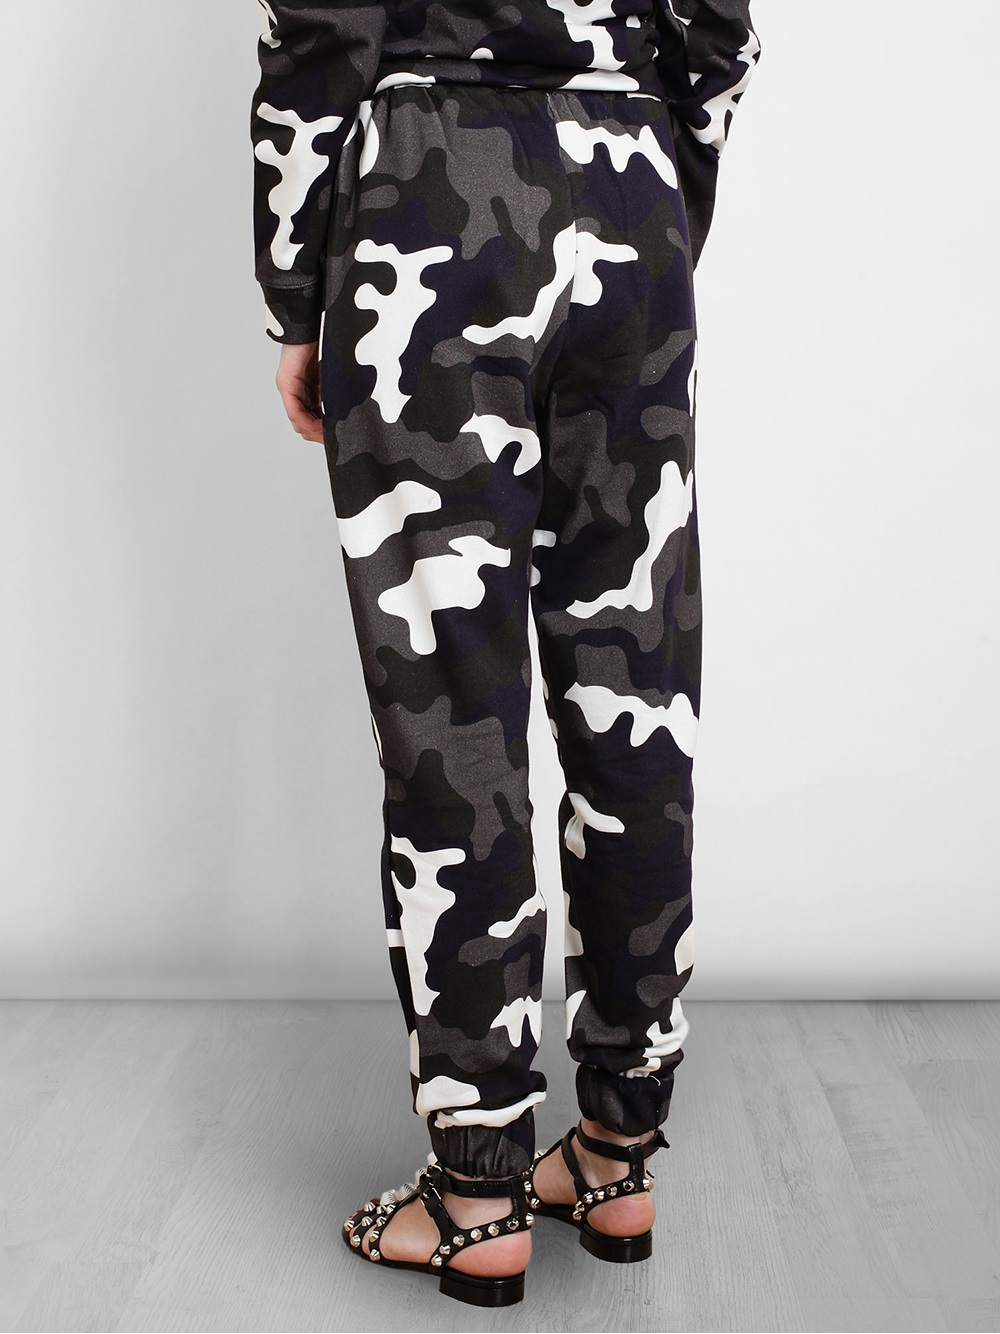 Brilliant Anna K Camo Printed Techno Pants In Gray (CAMOUFLAGE) | Lyst